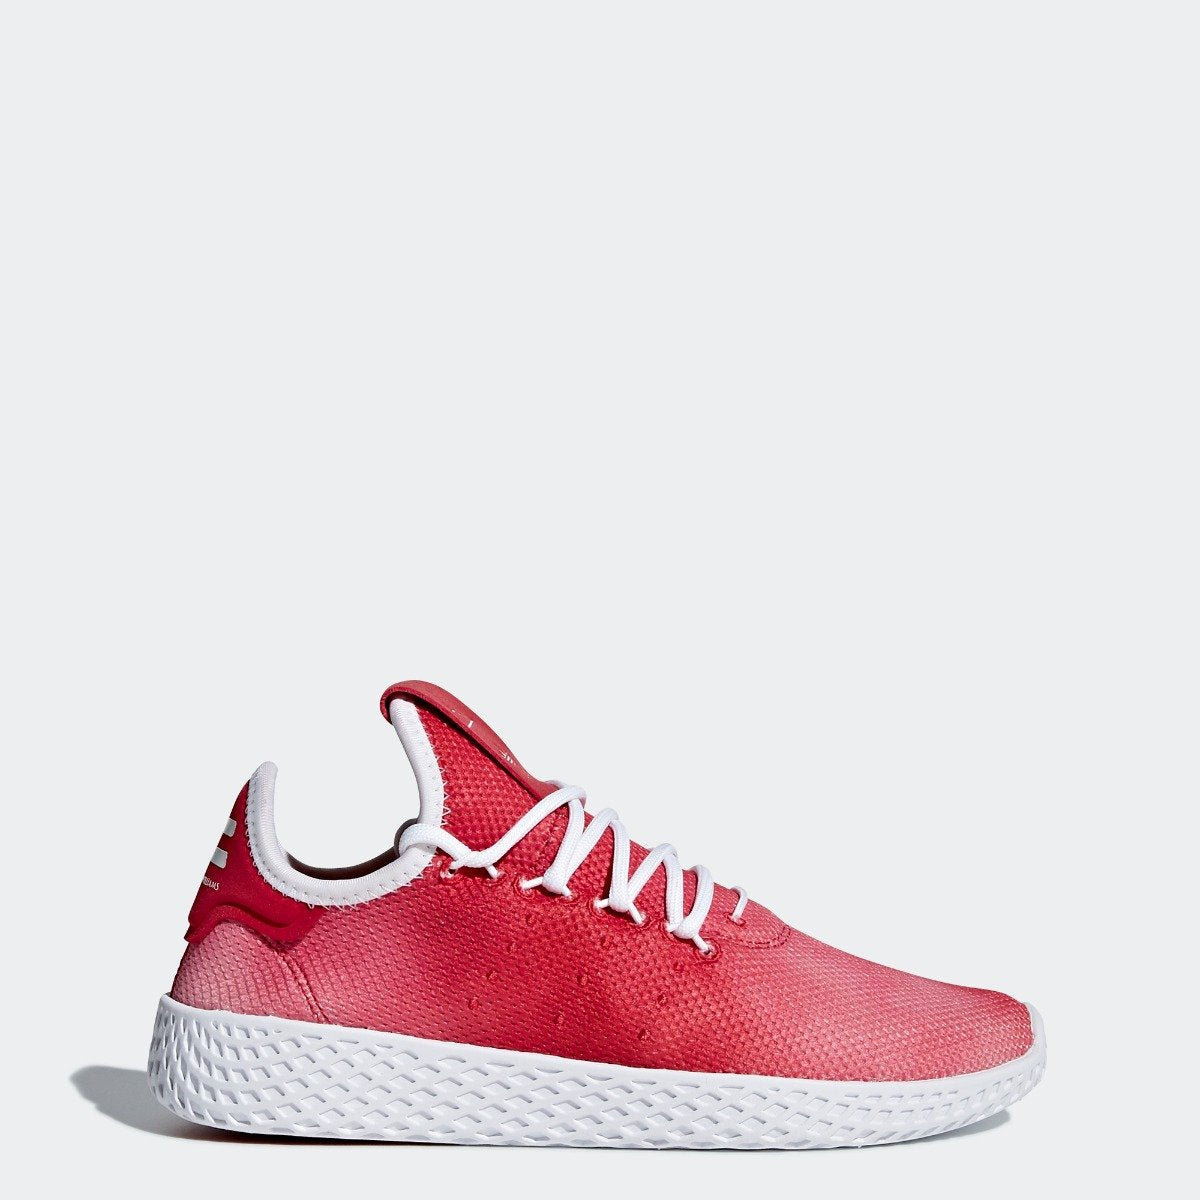 f0f3fe63cb5b8 Kid s adidas Originals Pharrell Williams Tennis Hu Shoes Scarlet Red with  Cloud White